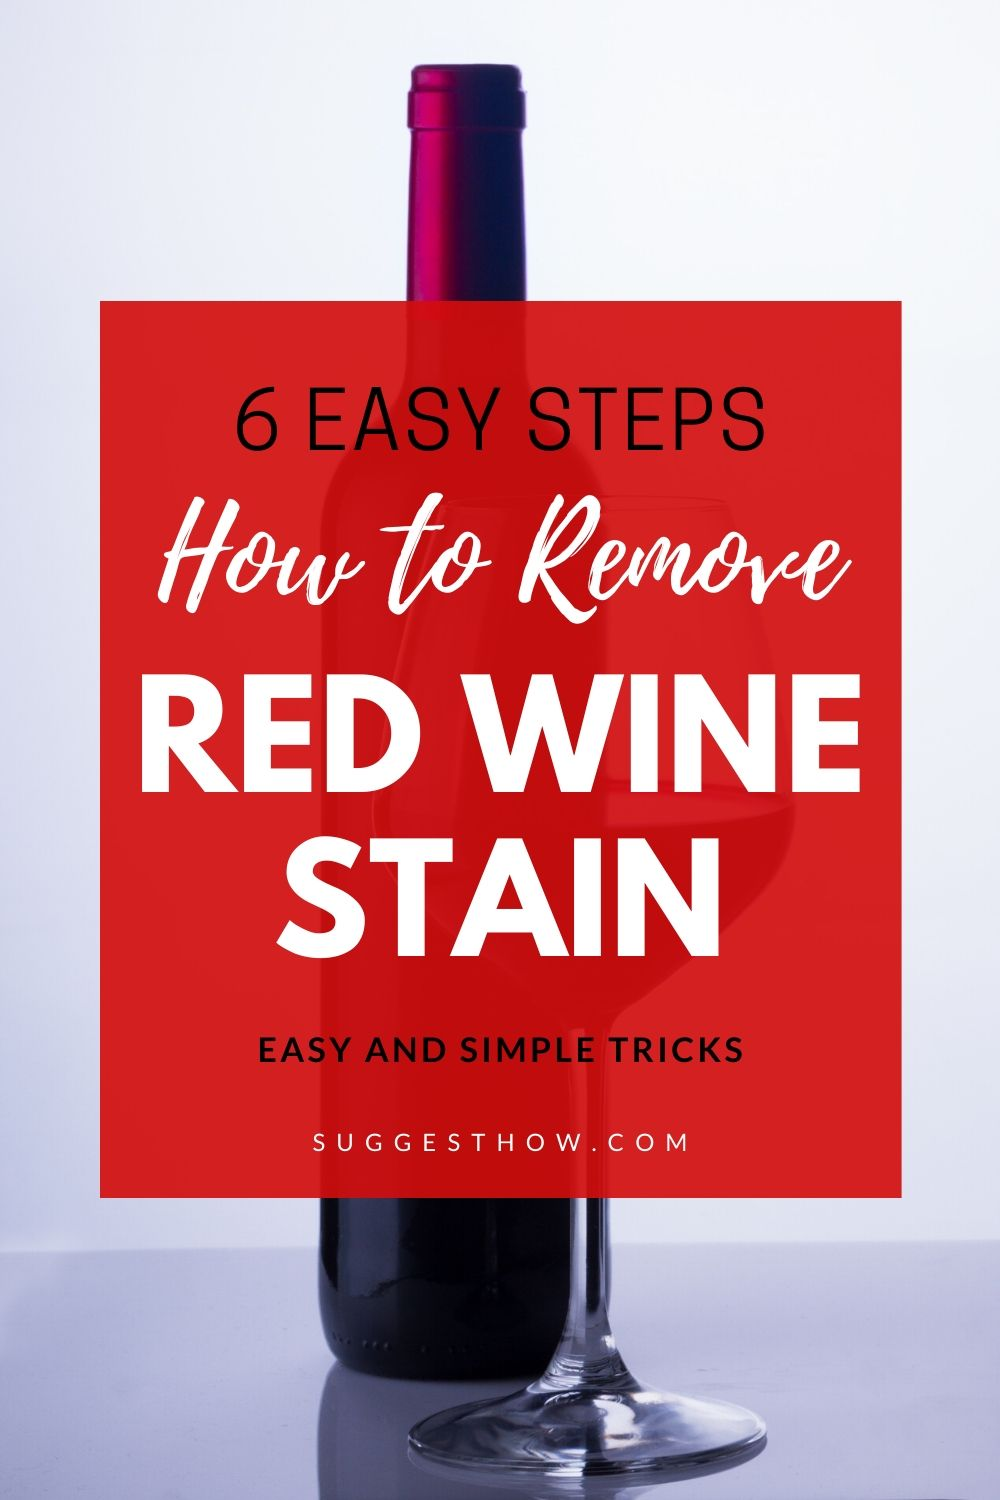 How To Remove Red Wine Stain